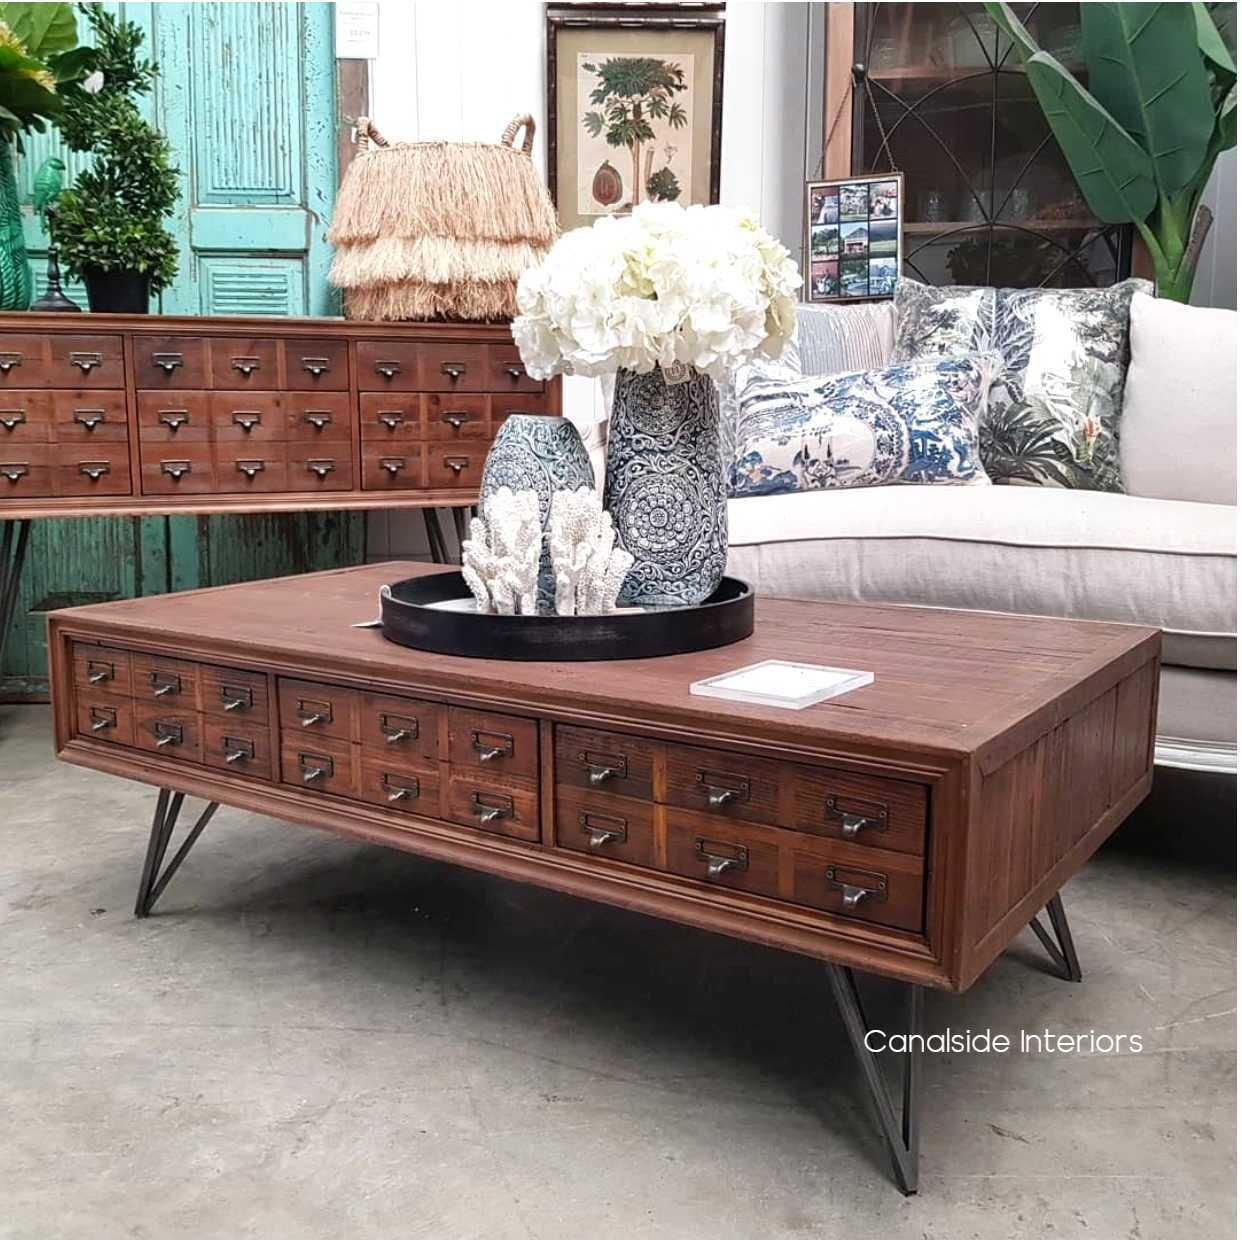 Apothecary Coffee Table 2 Sizes Cool Coffee Tables Coffee Table Living Room Table [ 1240 x 1242 Pixel ]